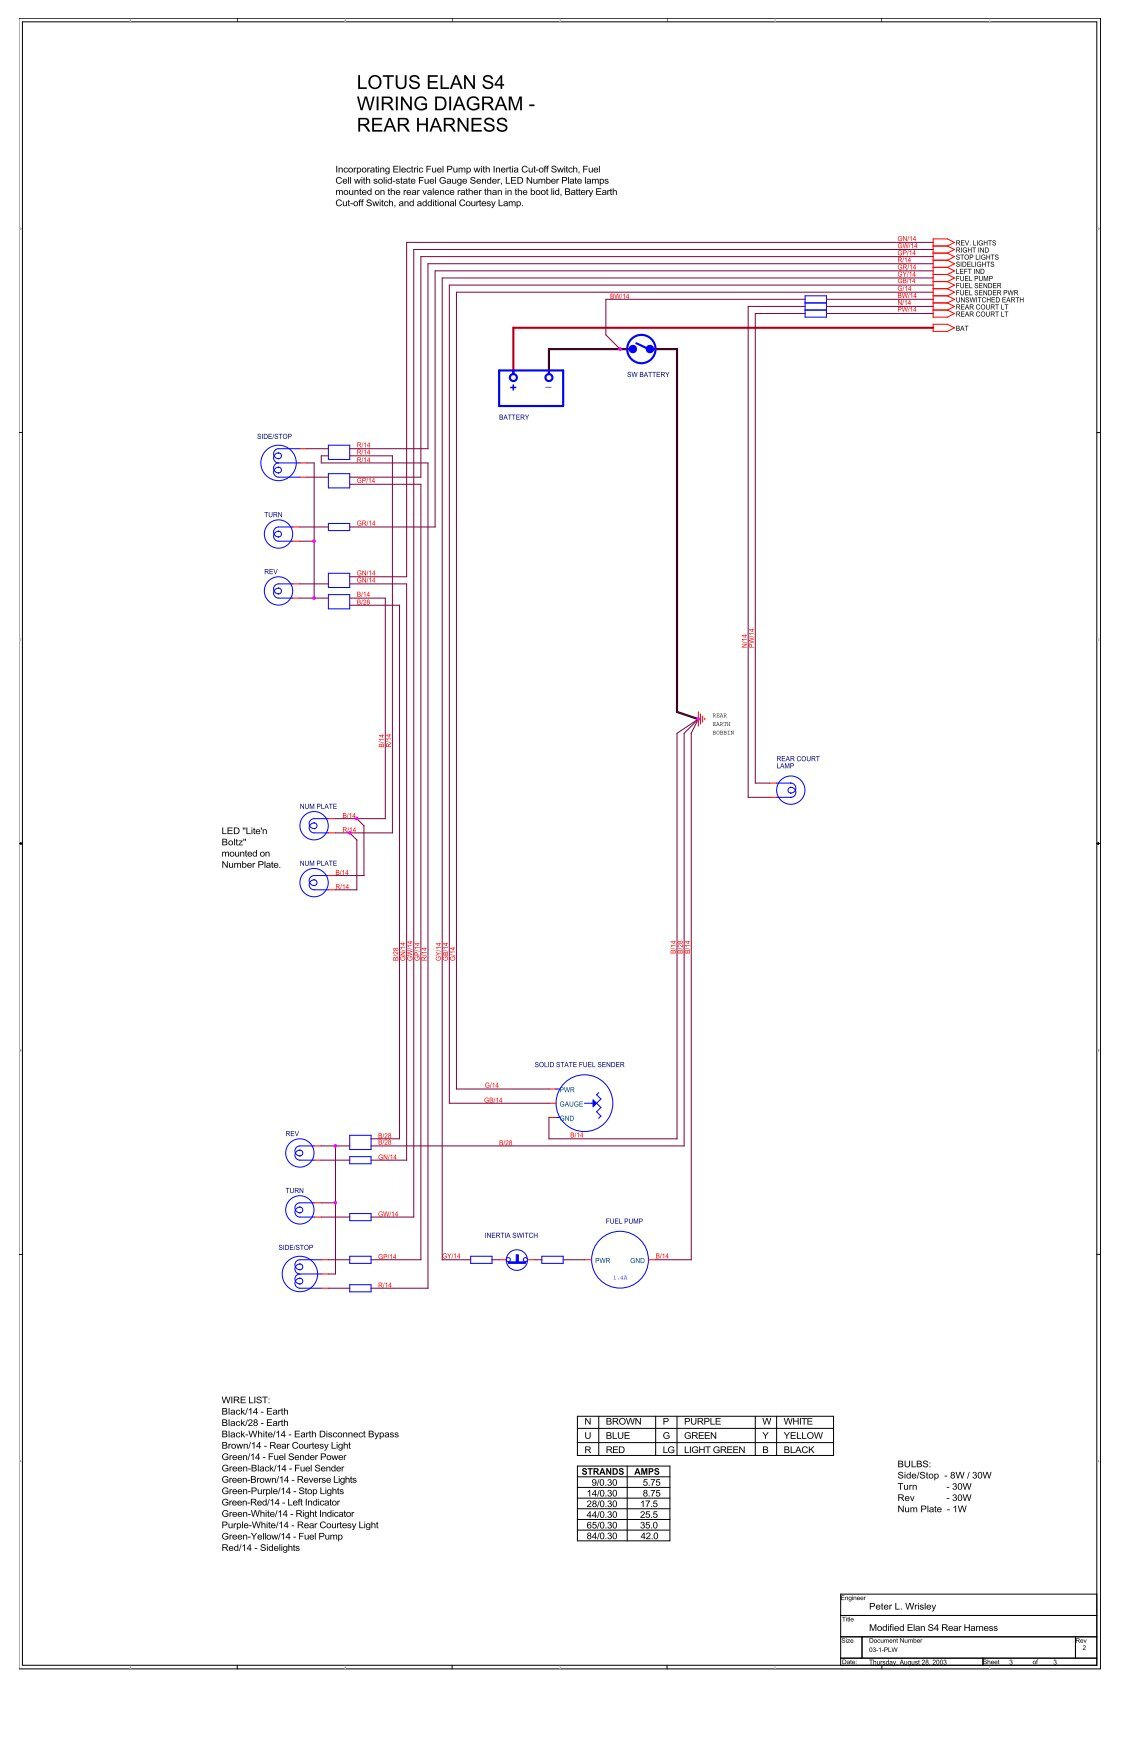 Electric fuel pump wiring diagram ge rangr wiring diagrams John Deere 210 Wiring-Diagram John Deere Lt180 Wiring Diagram John Deere X300 Wiring-Diagram on john deere lx178 wiring diagram